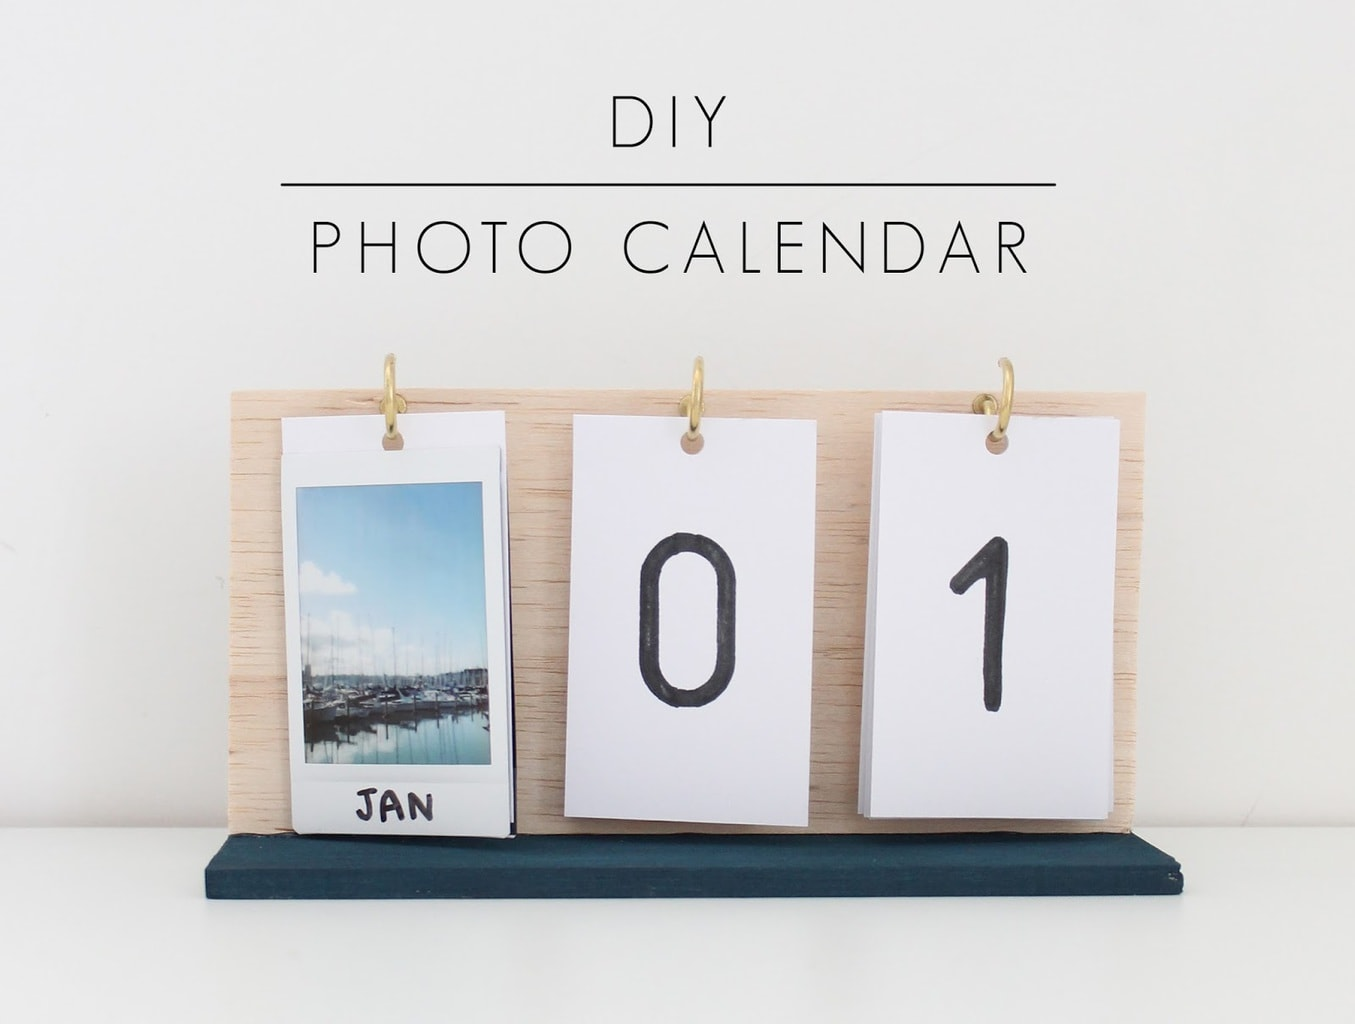 DIY photo calendar from Harri Wren